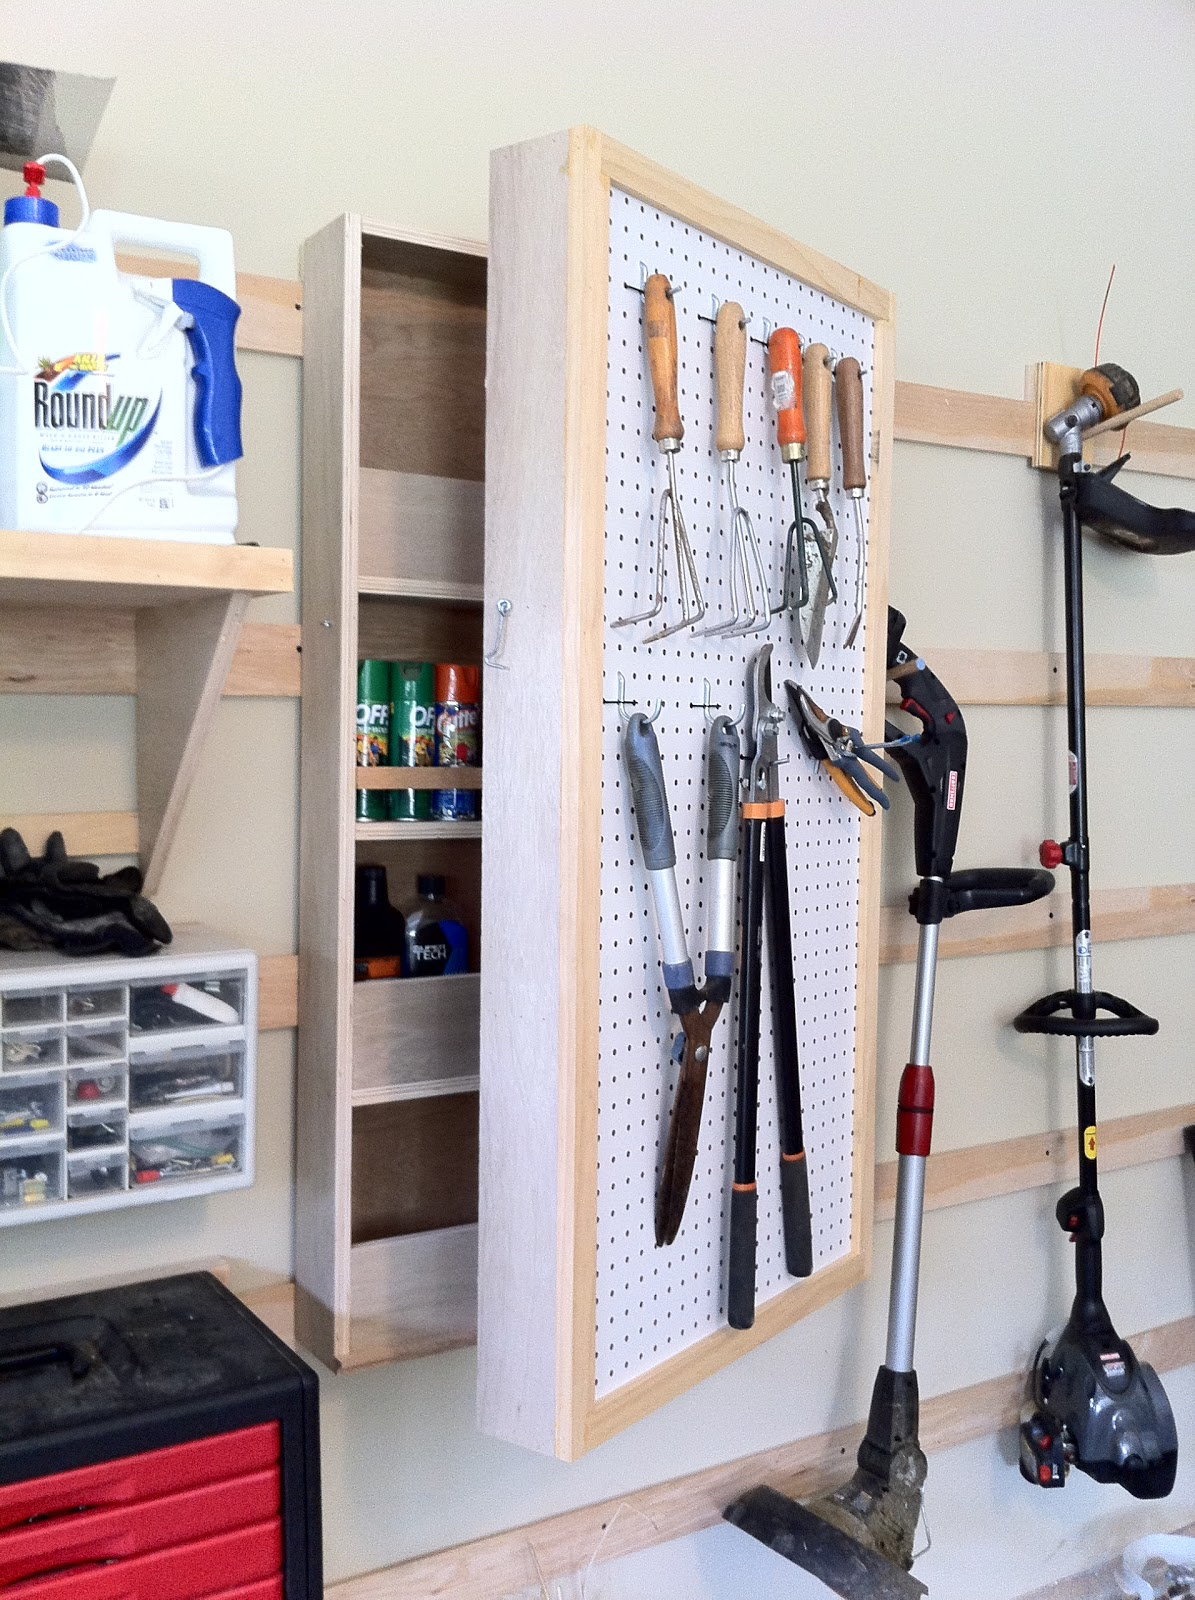 9 Wall Storage Ideas That You Need To Try: Chad's Workshop: French Cleat Storage